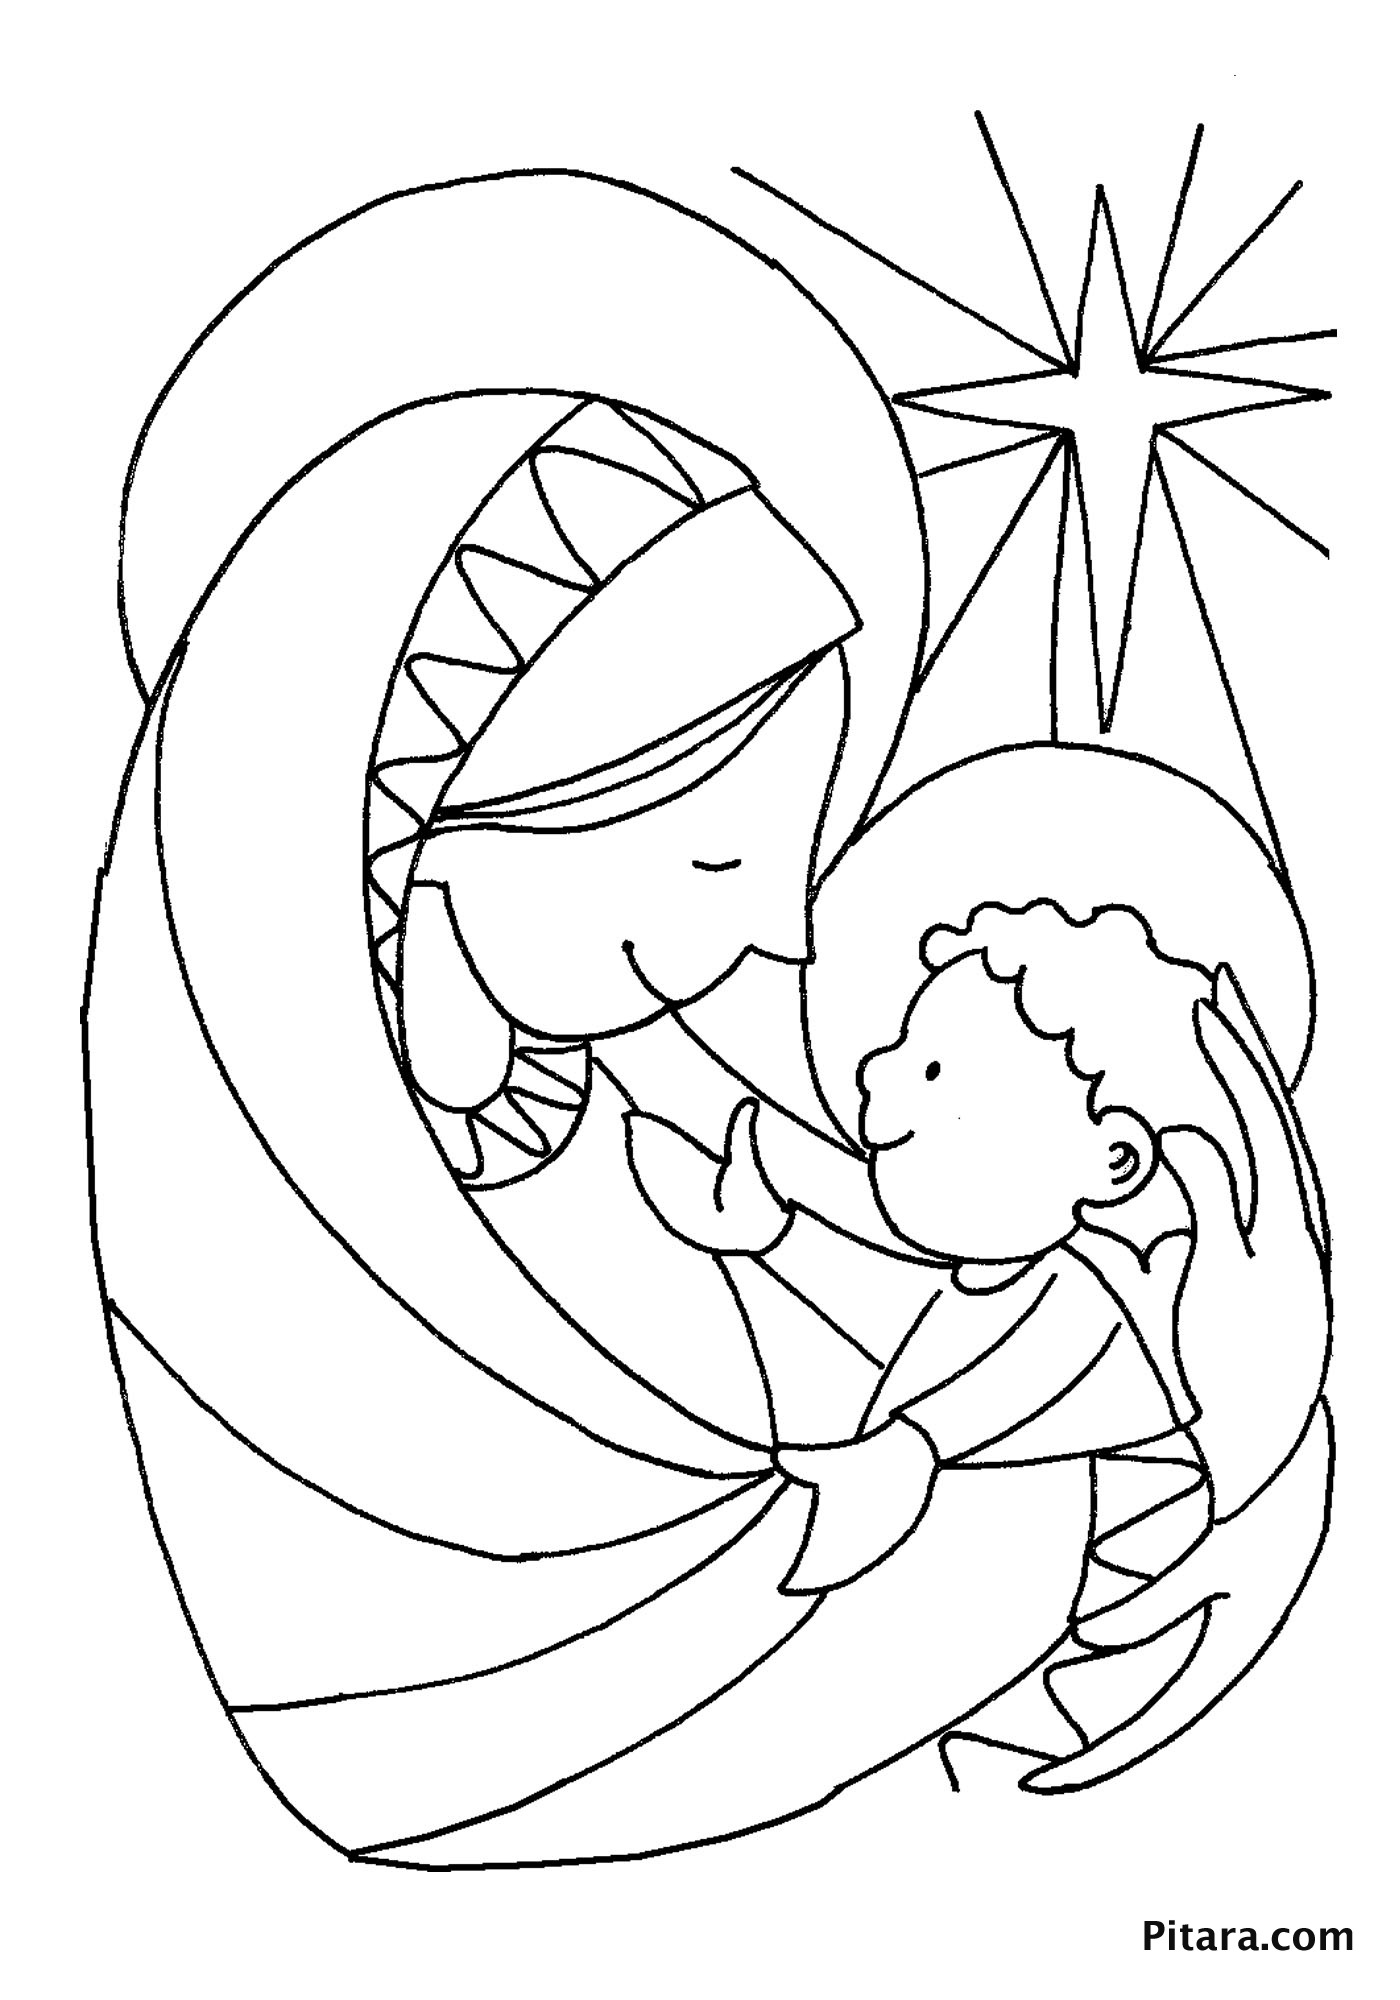 jesus coloring pages last supper coloring pages for children free coloring pages jesus pages coloring